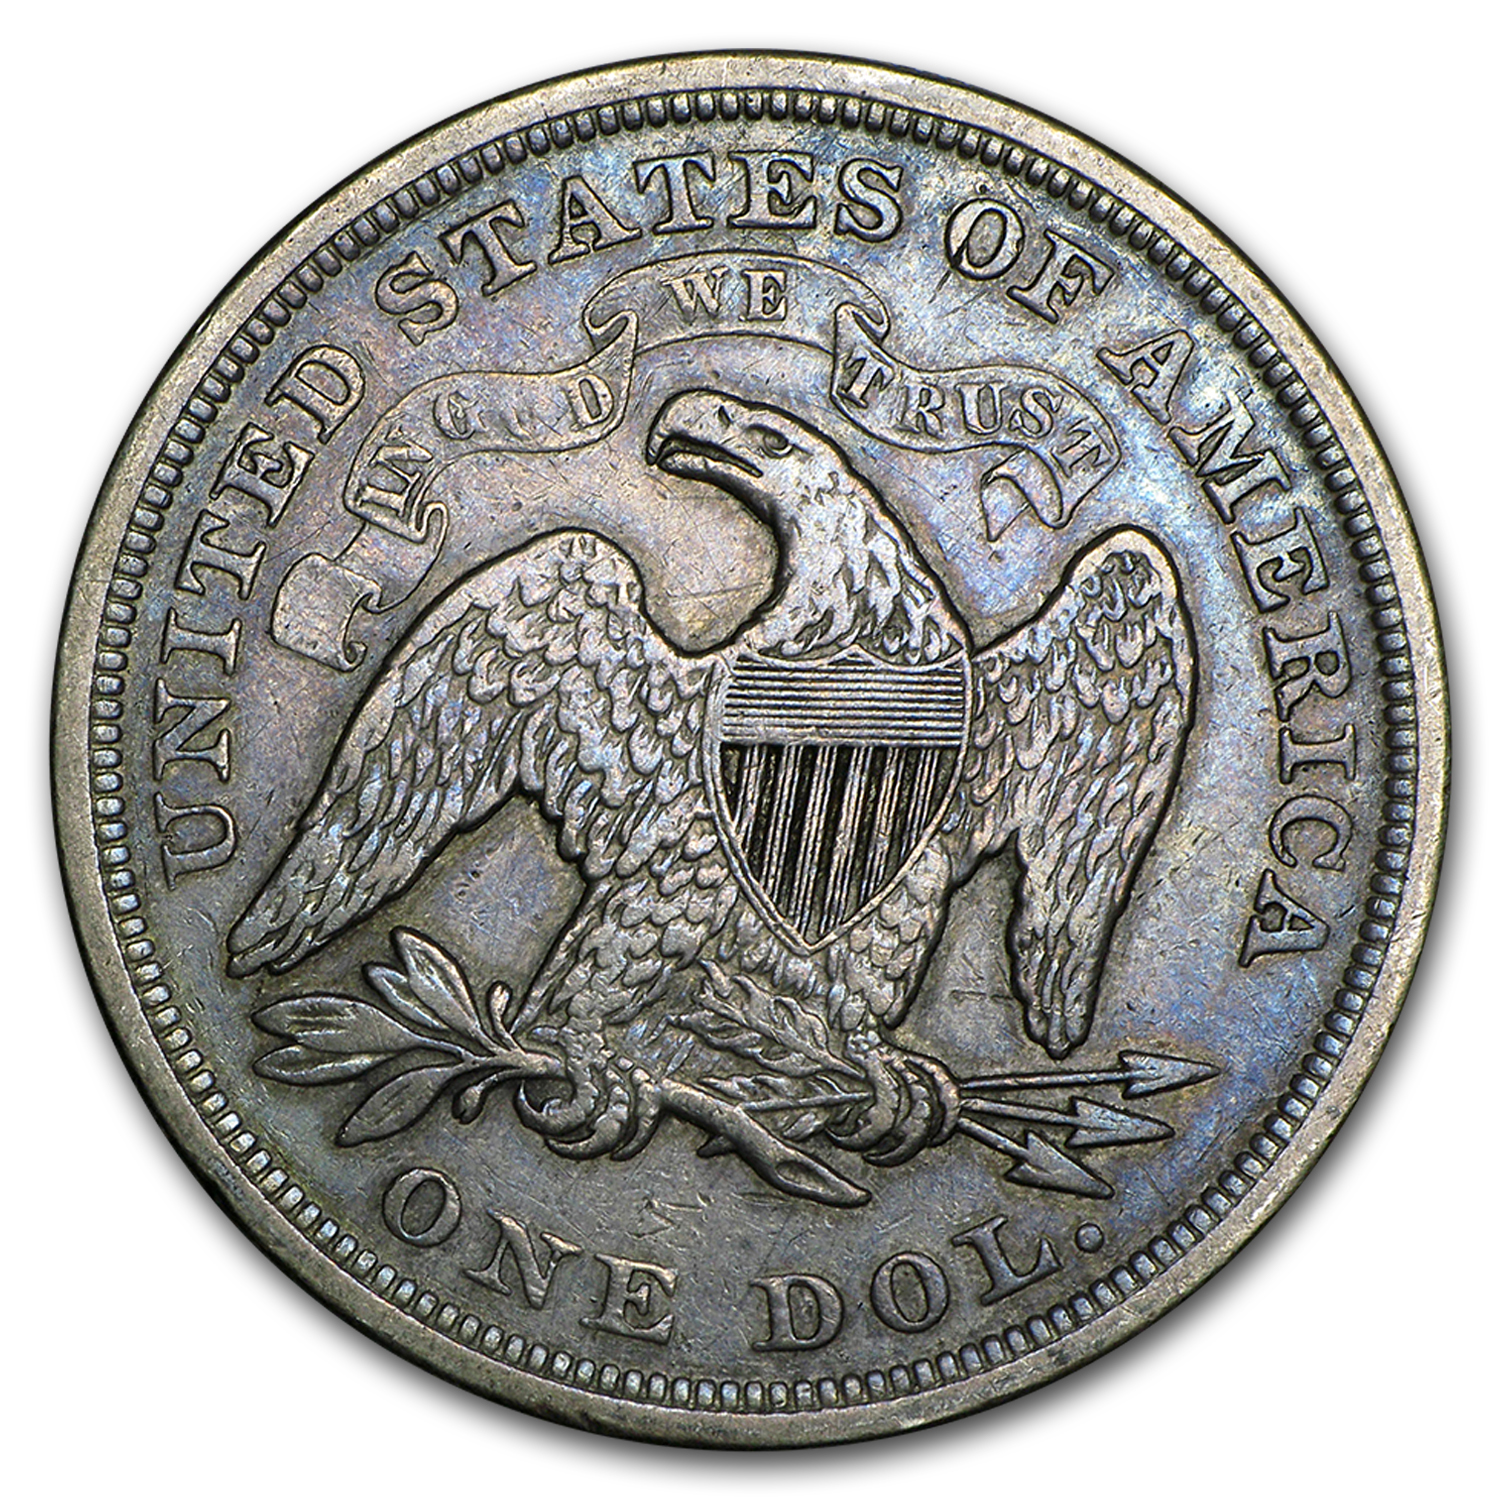 1840-1873 Liberty Seated Dollar - Extra Fine